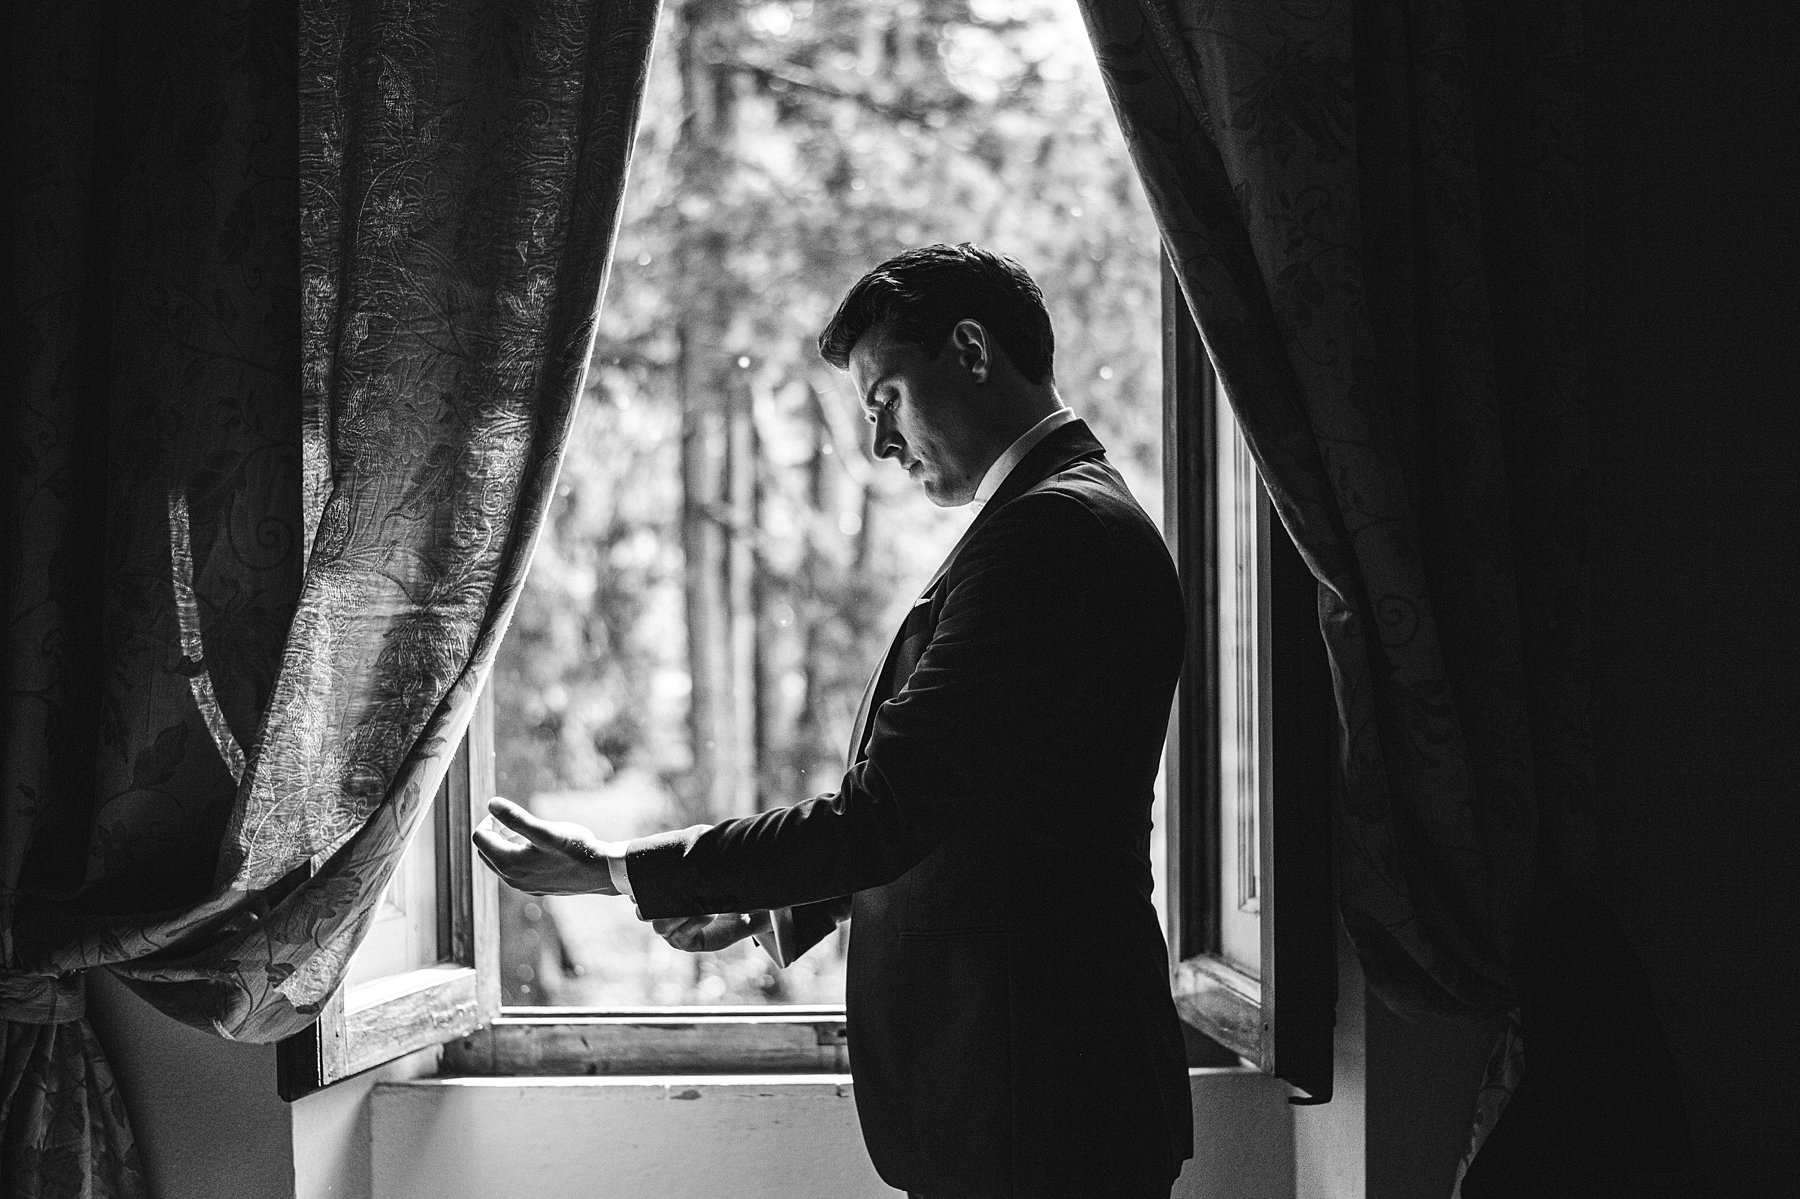 Heartfelt small wedding in the countryside of Tuscany. Elegant wedding photo with the groom during his preparation at Palazzo Vanneschi in Bucine Valdarno, a stone building from the 17th century immersed in a luxuriant park